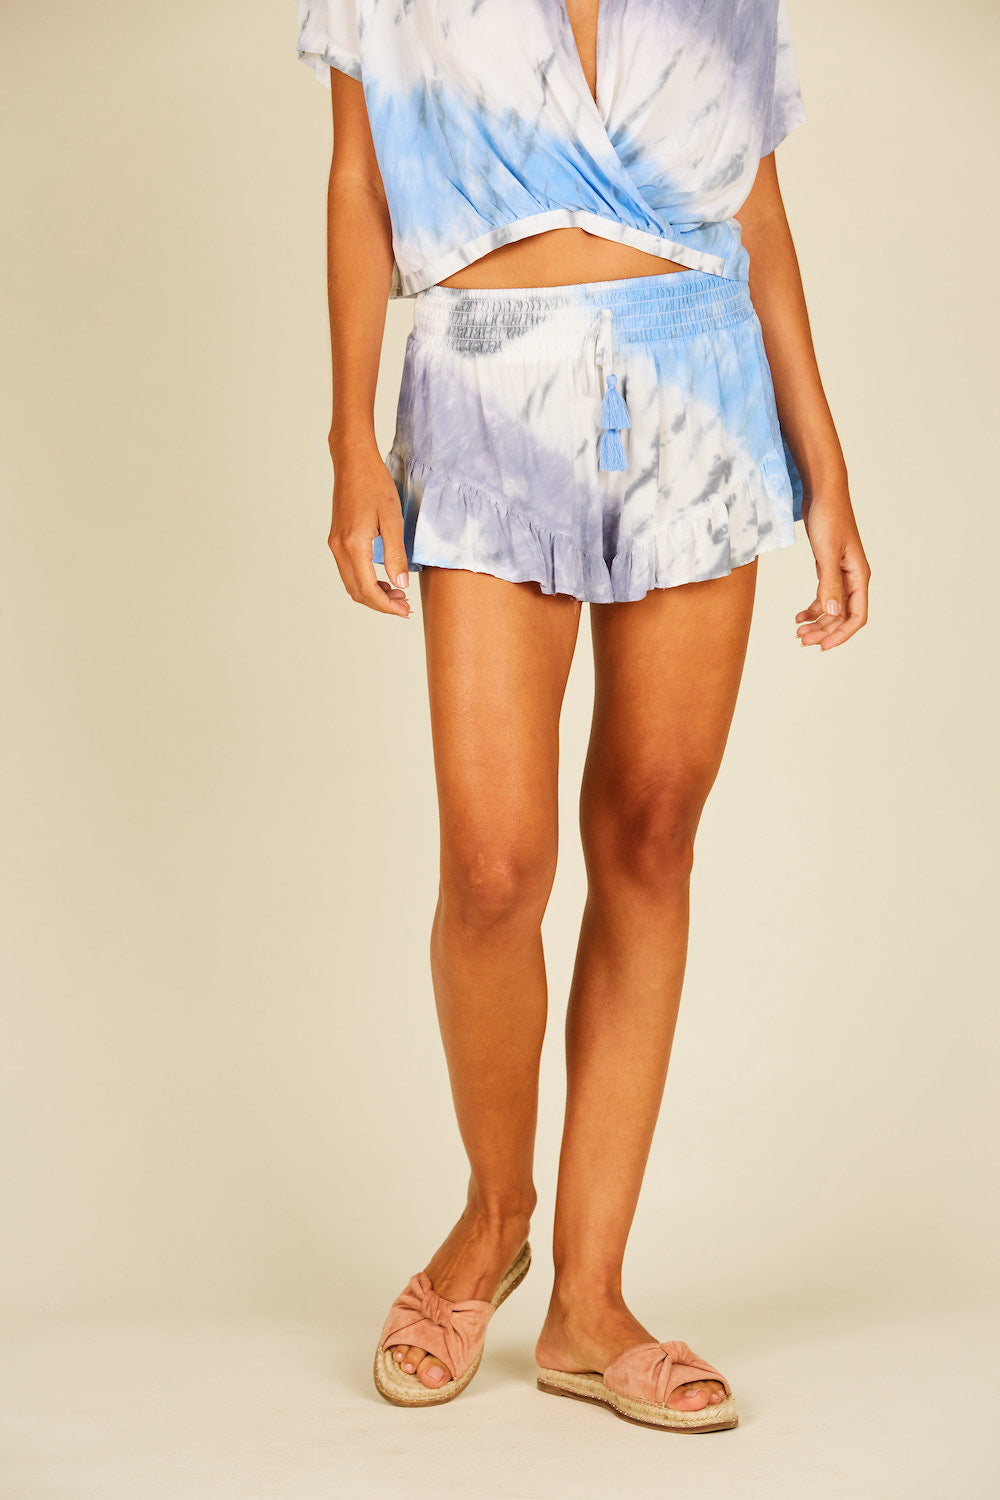 Seaside Tie Dye Ruffle Short